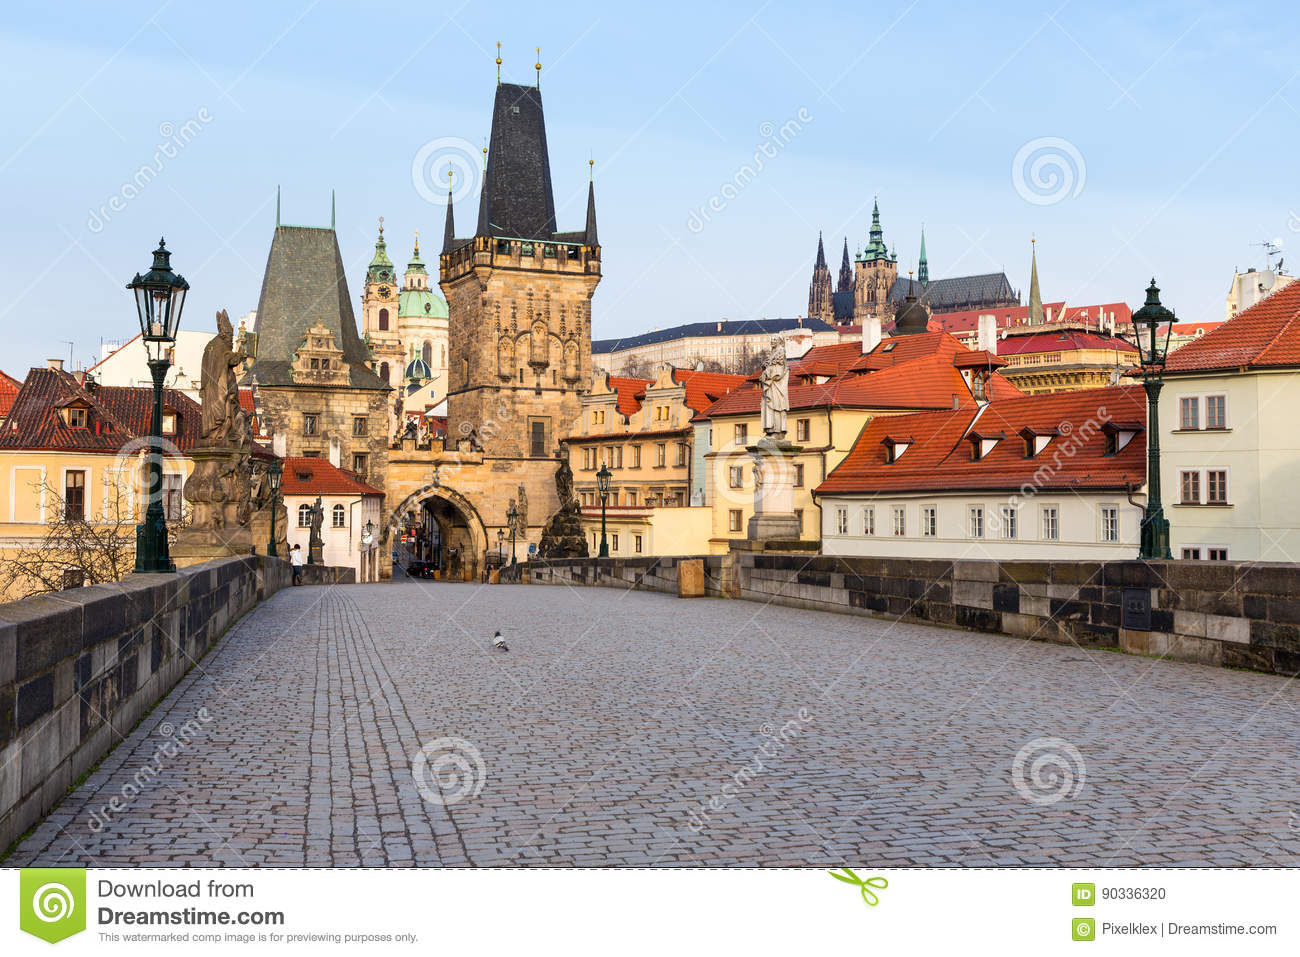 Charles Bridge Karluv Most, Praga